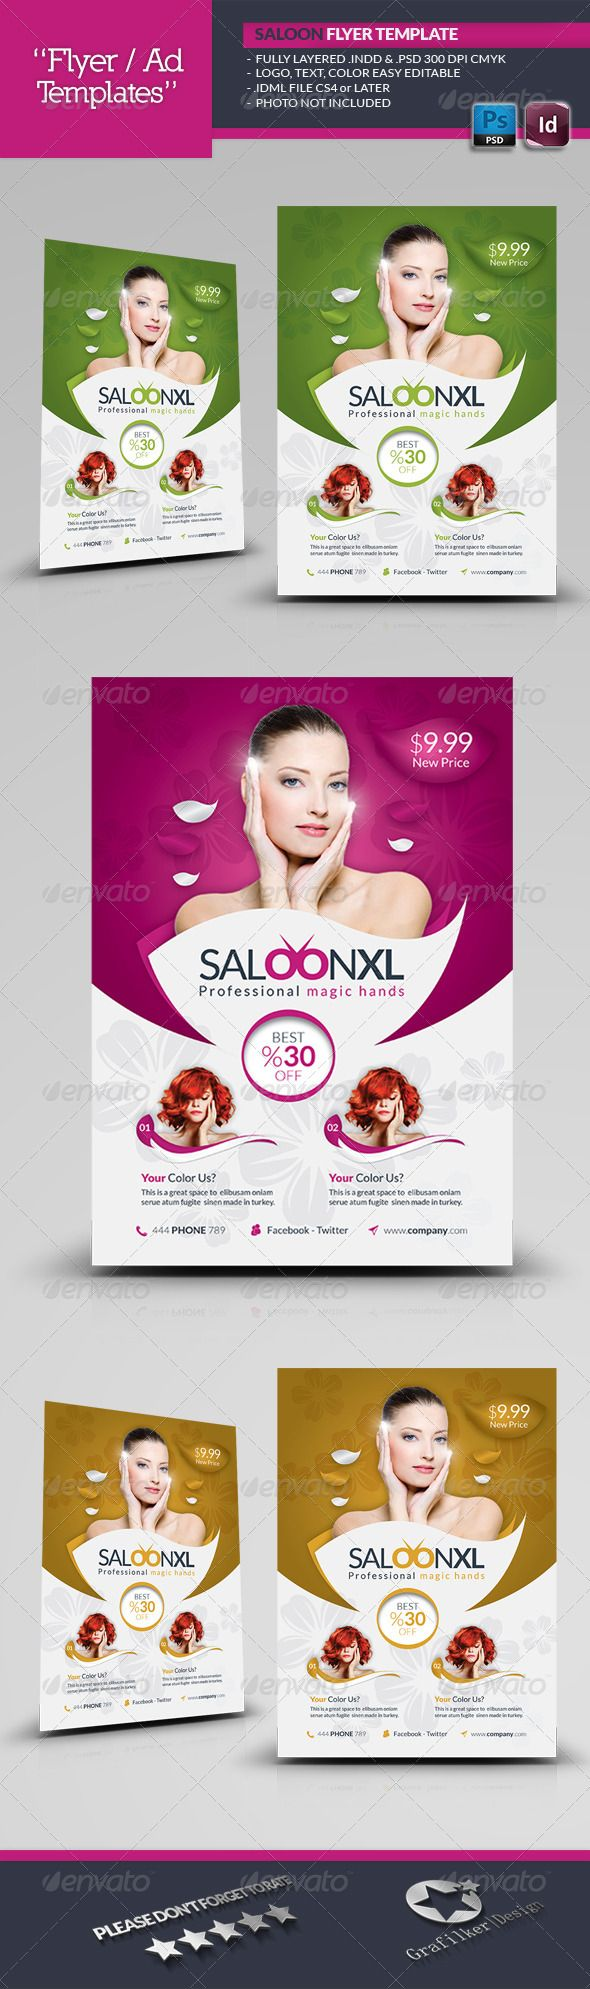 help wanted flyer template 17 best images about flyer marketing ...